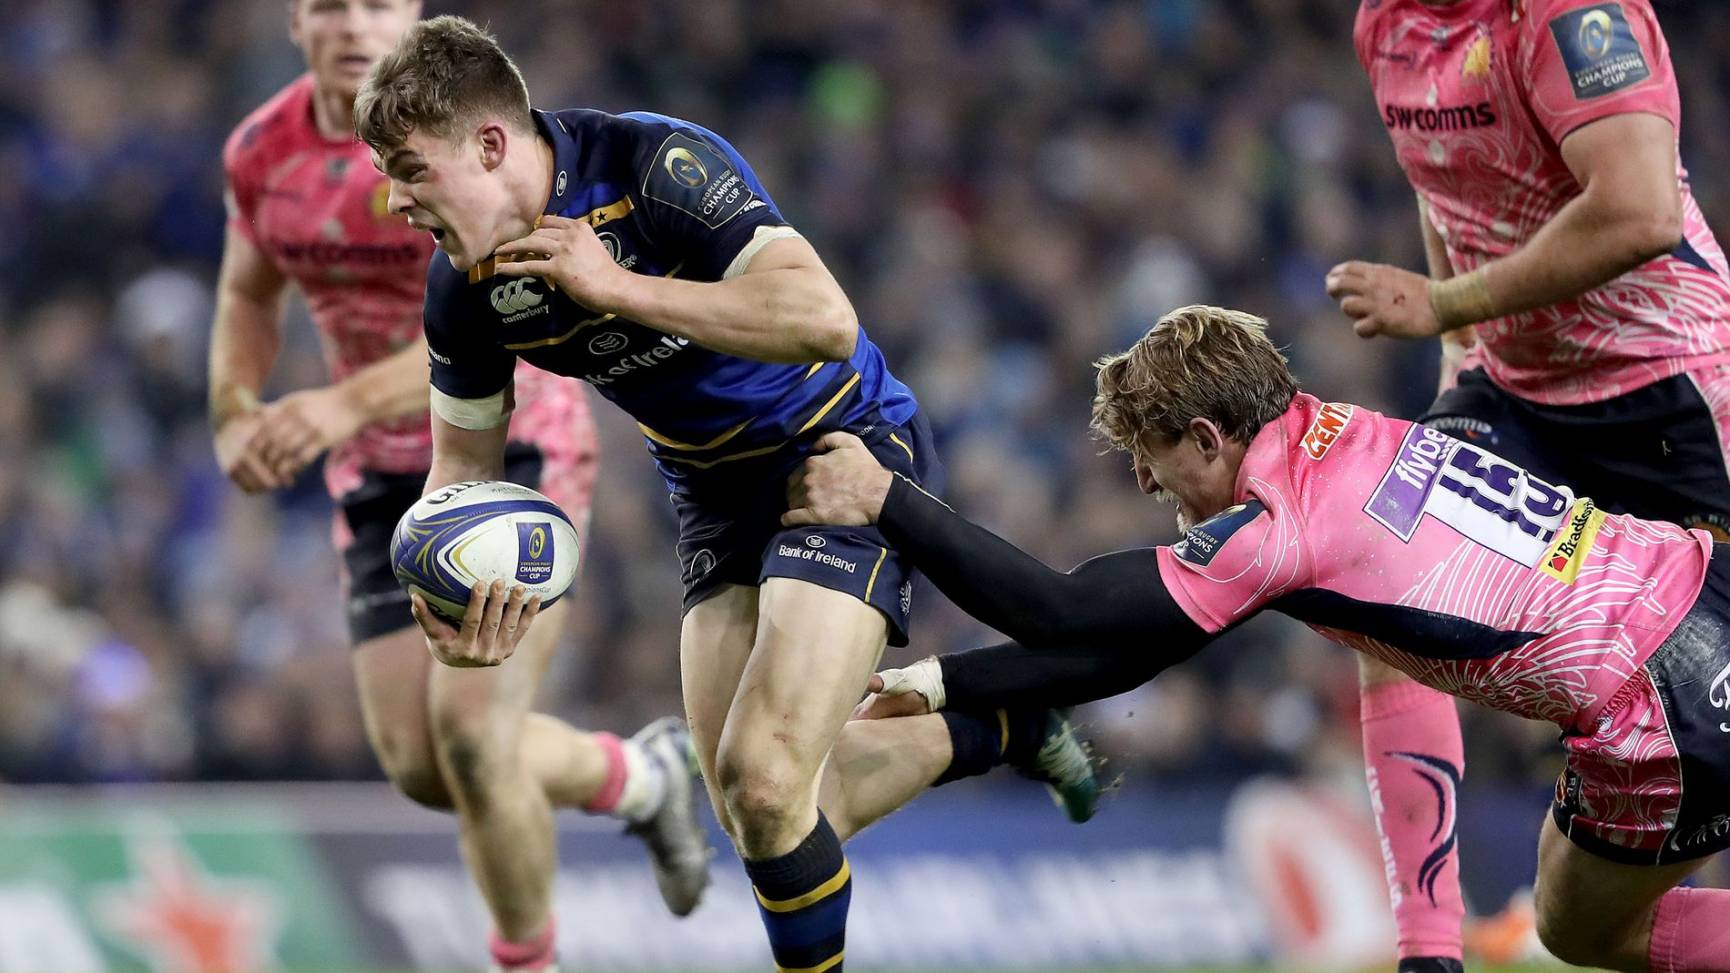 3b42c6e8f89 Irish Rugby | Champions Cup Quarter-Final Preview: Leinster v Saracens